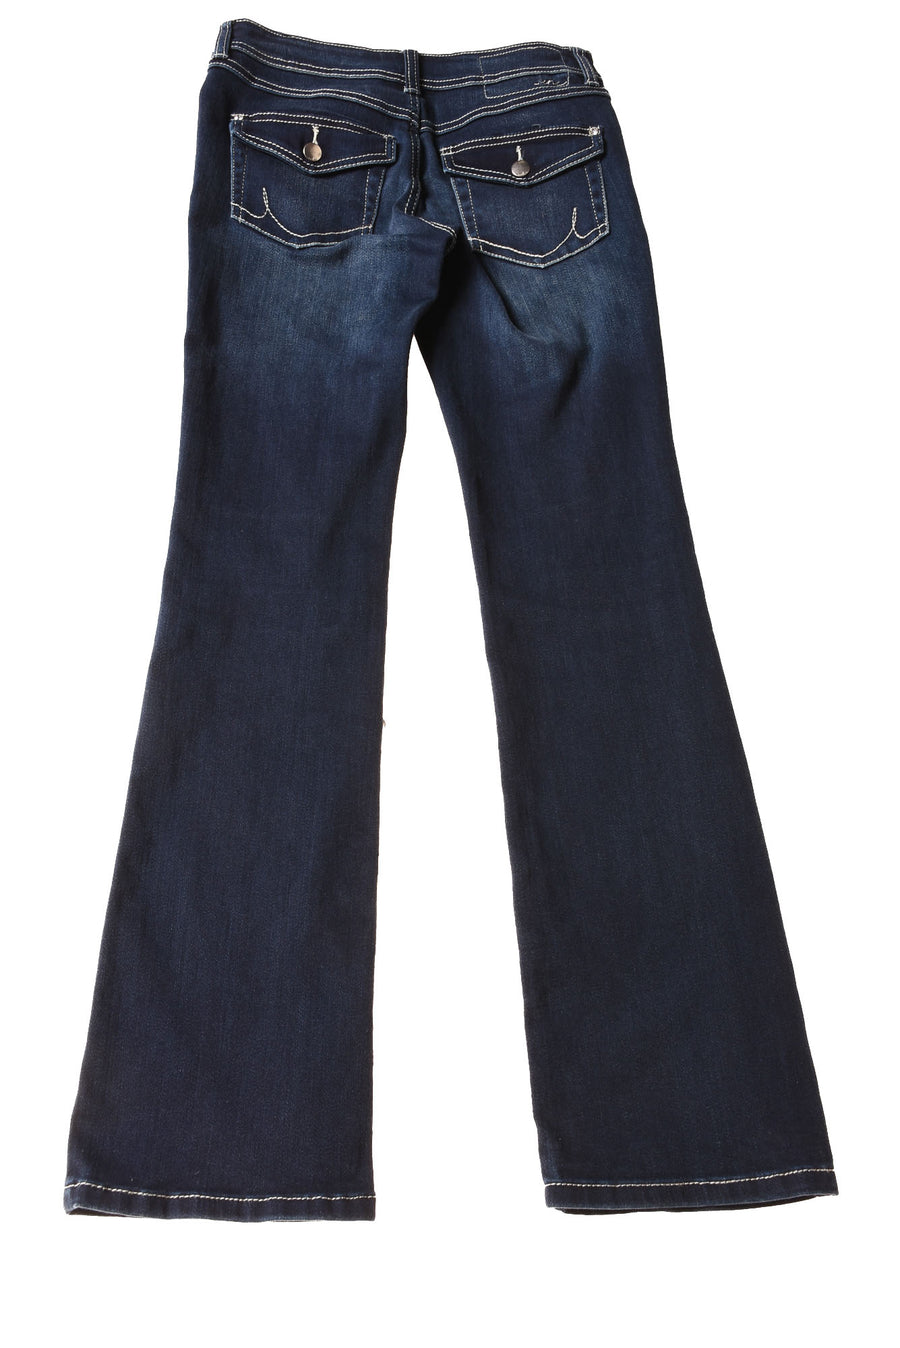 Women's Jeans By International Concepts